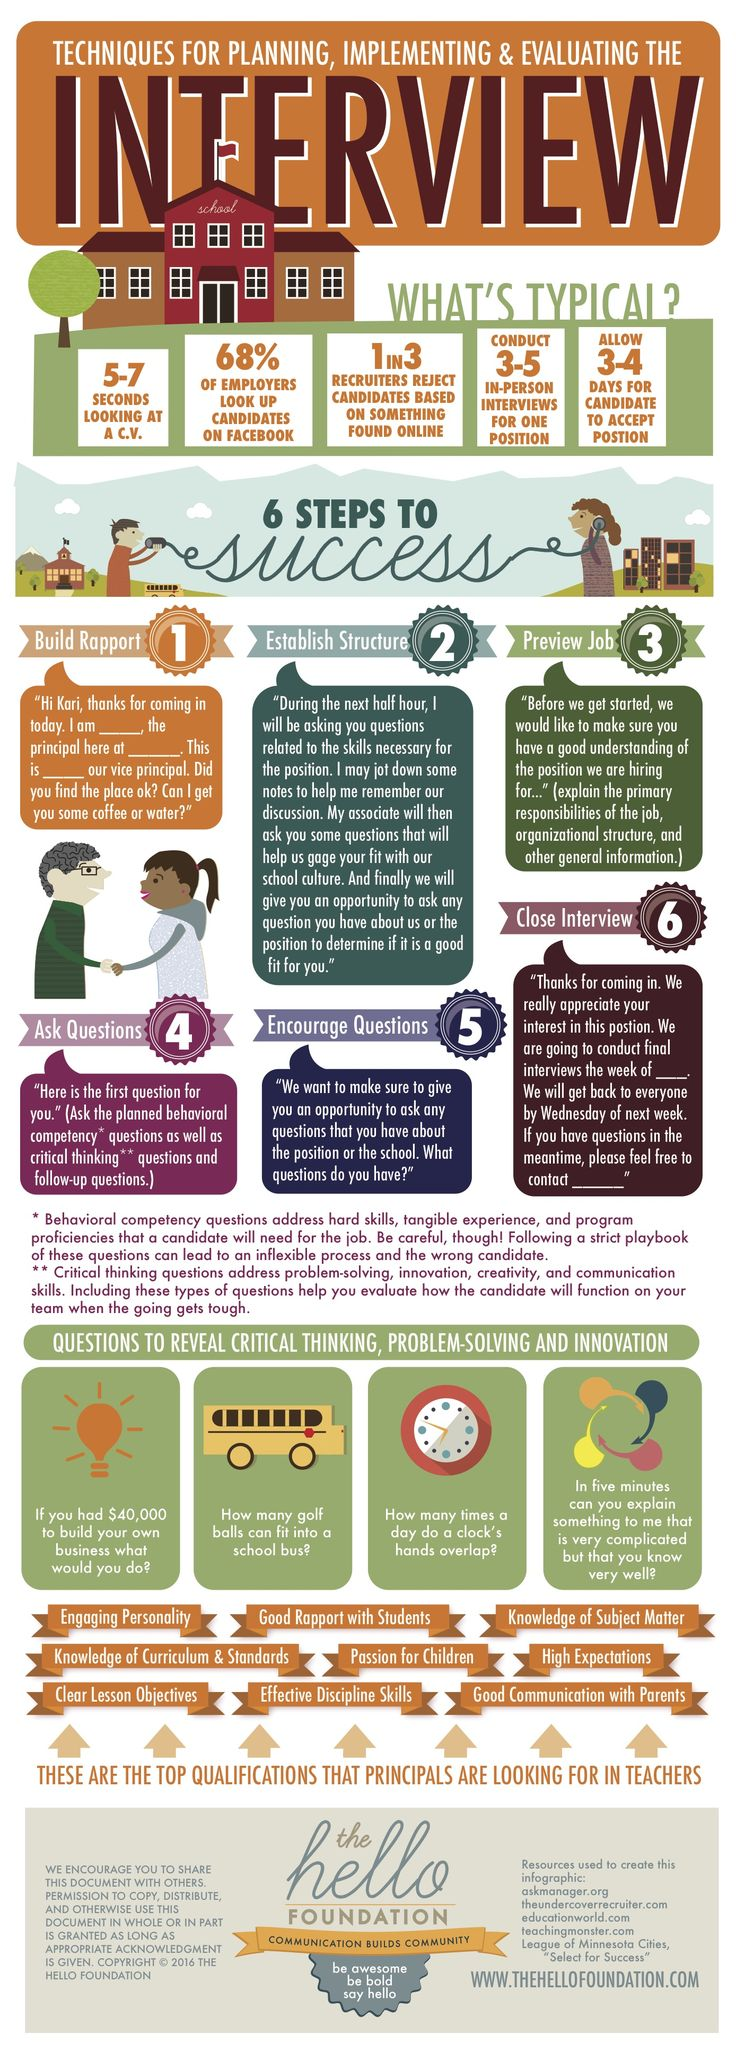 Planning, Implementing, and Evaluating the Education Interview Infographic - http://elearninginfographics.com/planning-implementing-and-evaluating-the-education-interview/